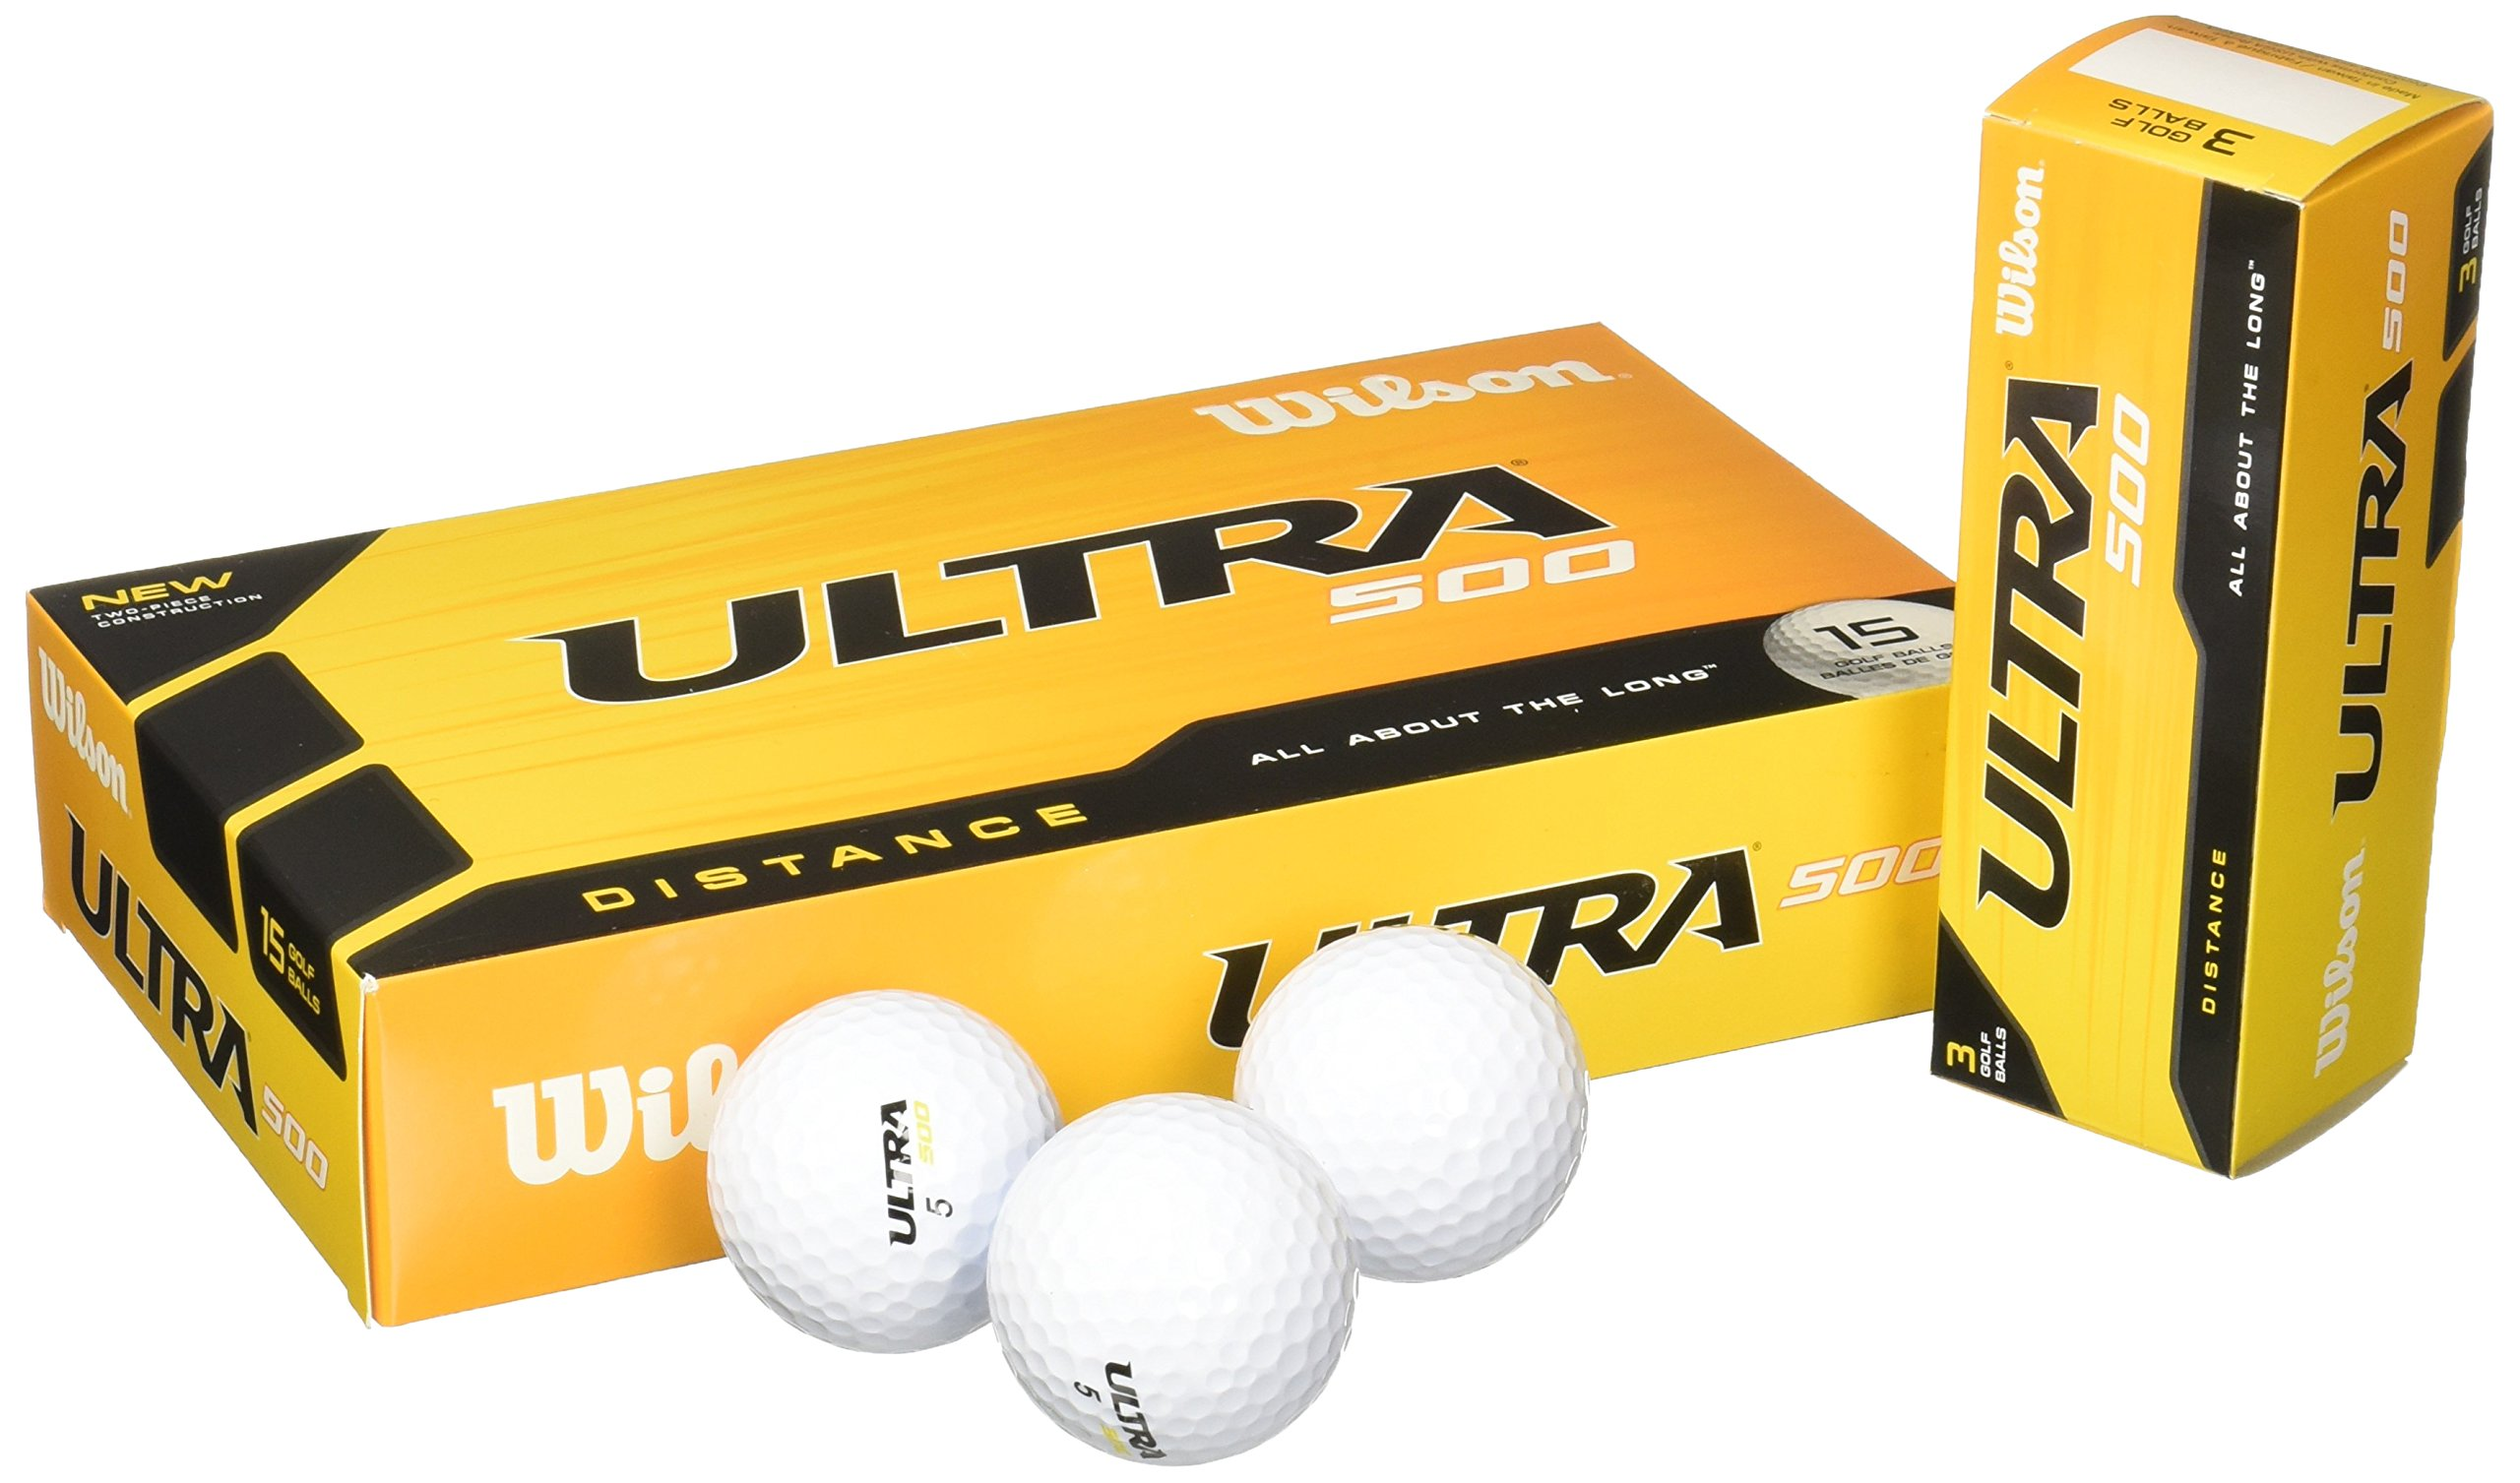 Wilson Ultra 500 Distance Golf Ball (15-Pack), White by Wilson